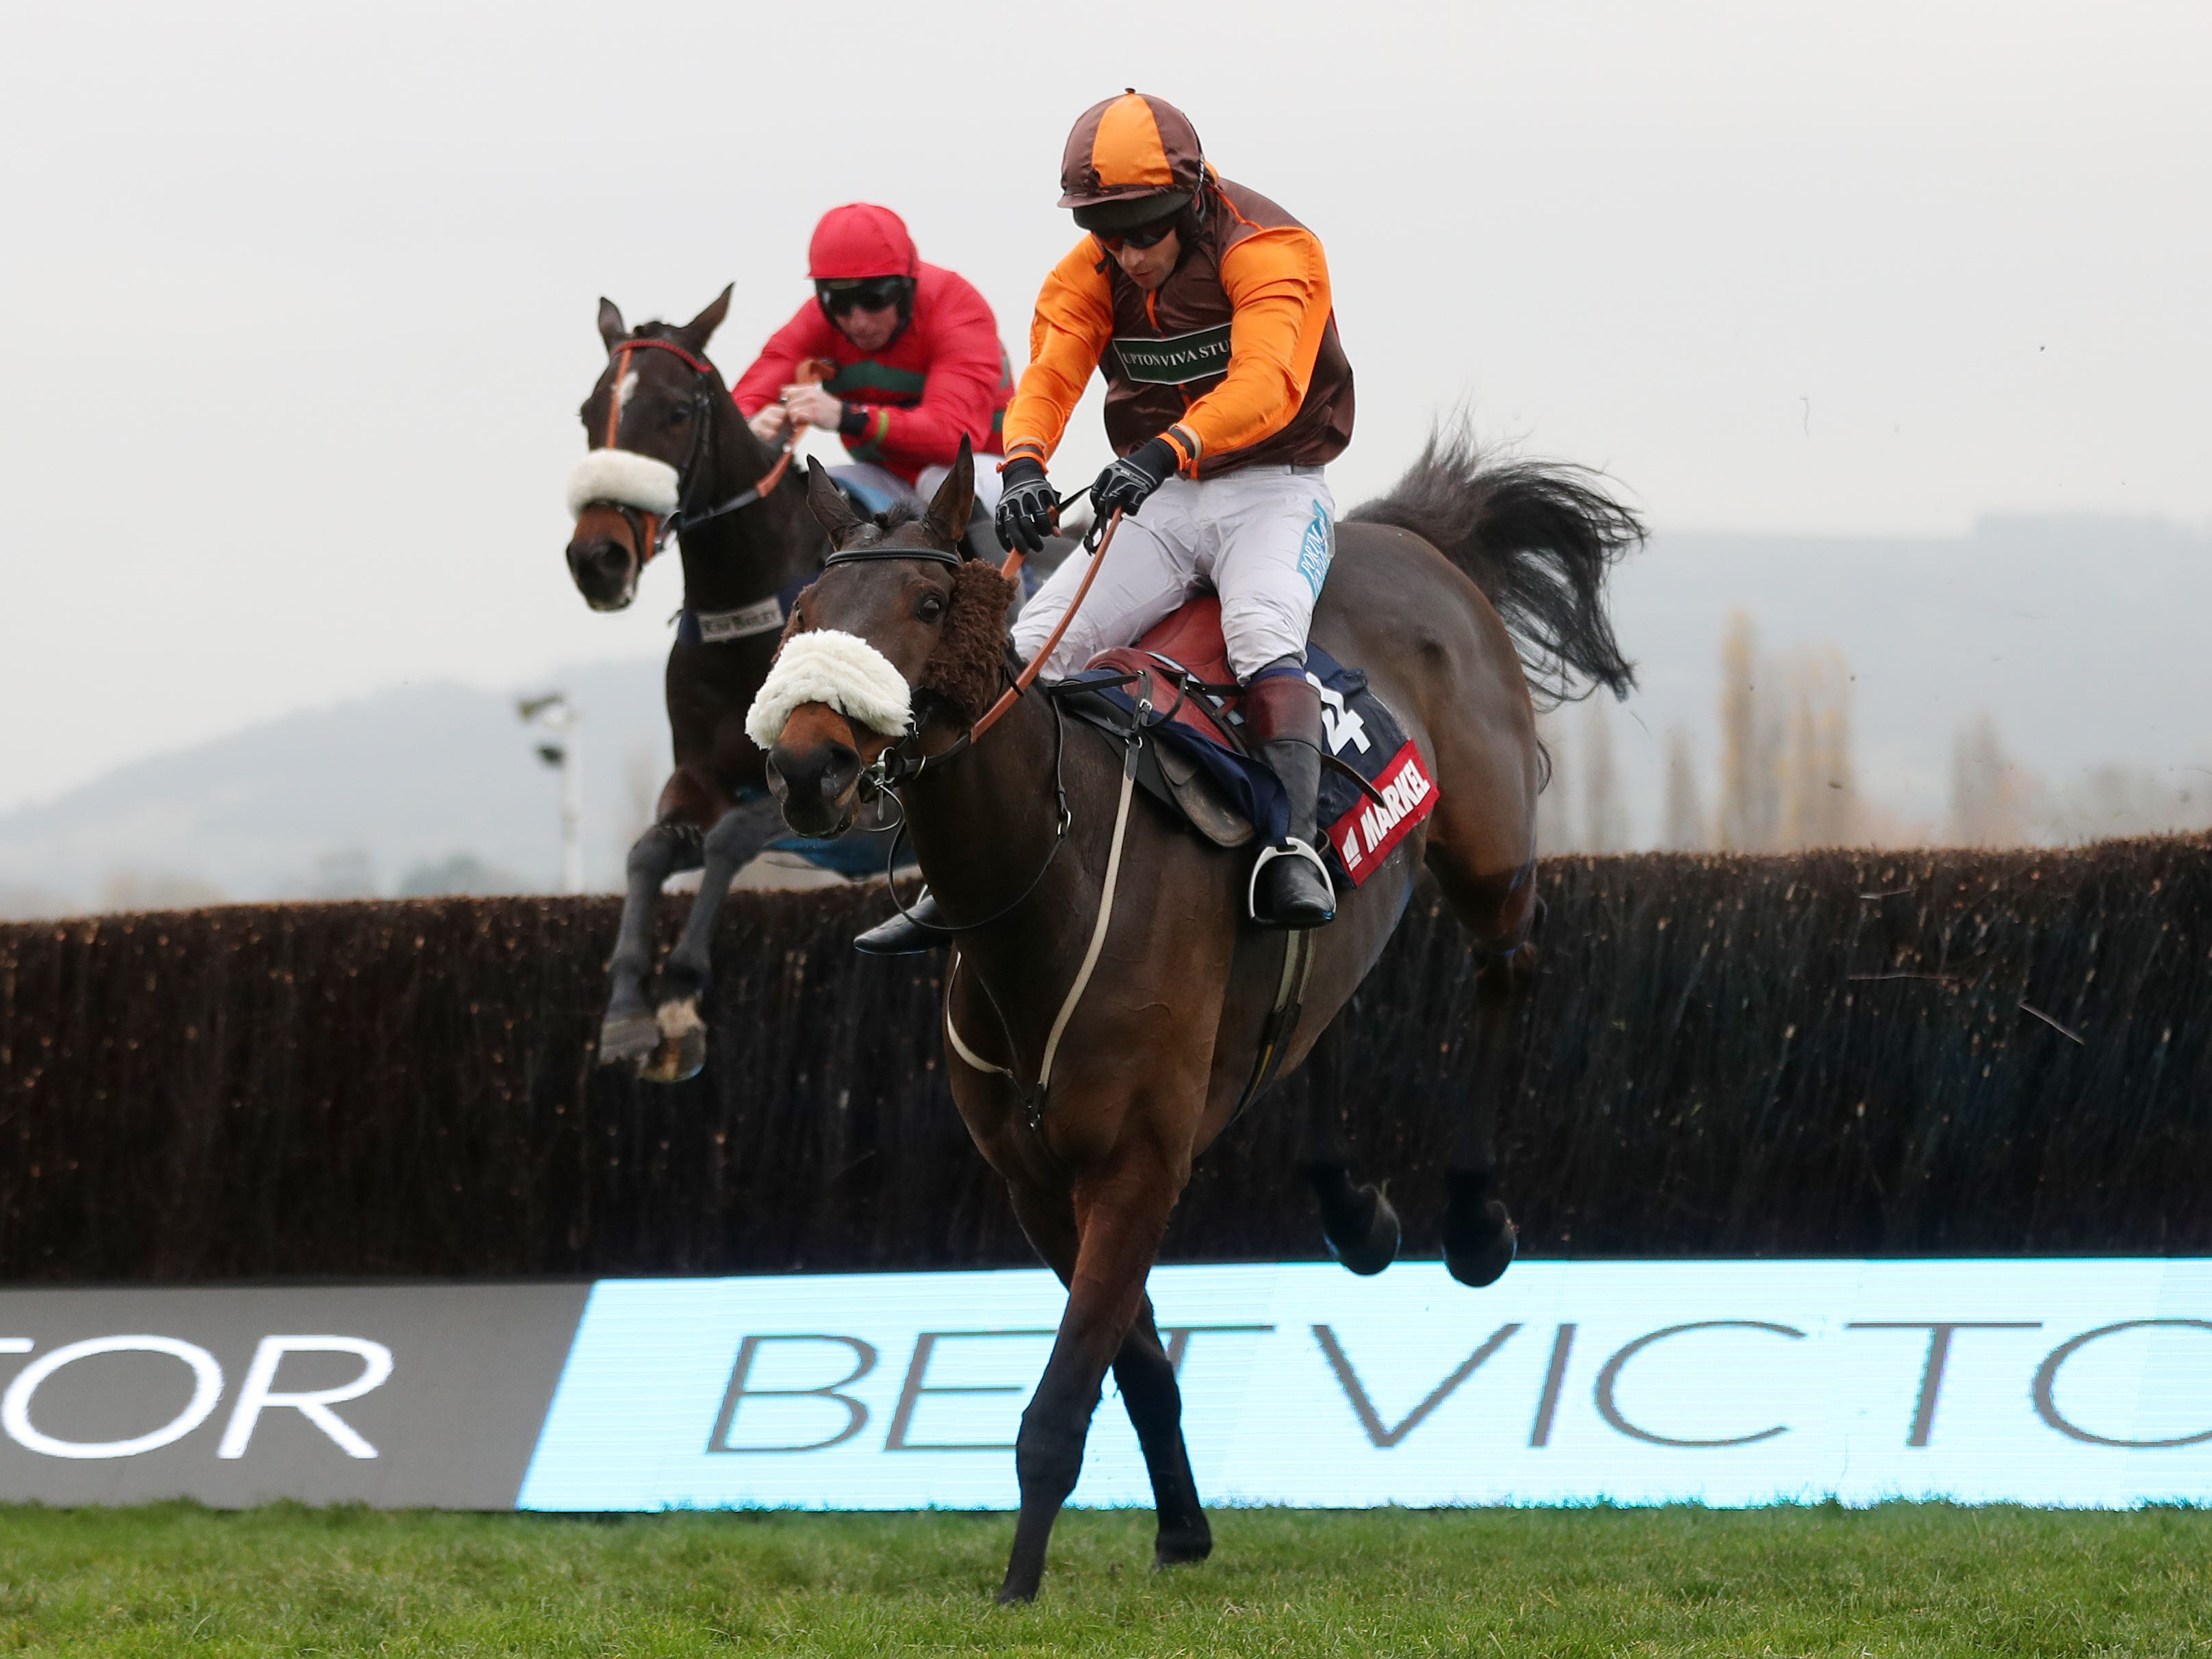 The Young Master and Sam Waley-Cohen on their way to victory at Cheltenham (David Davies/PA)